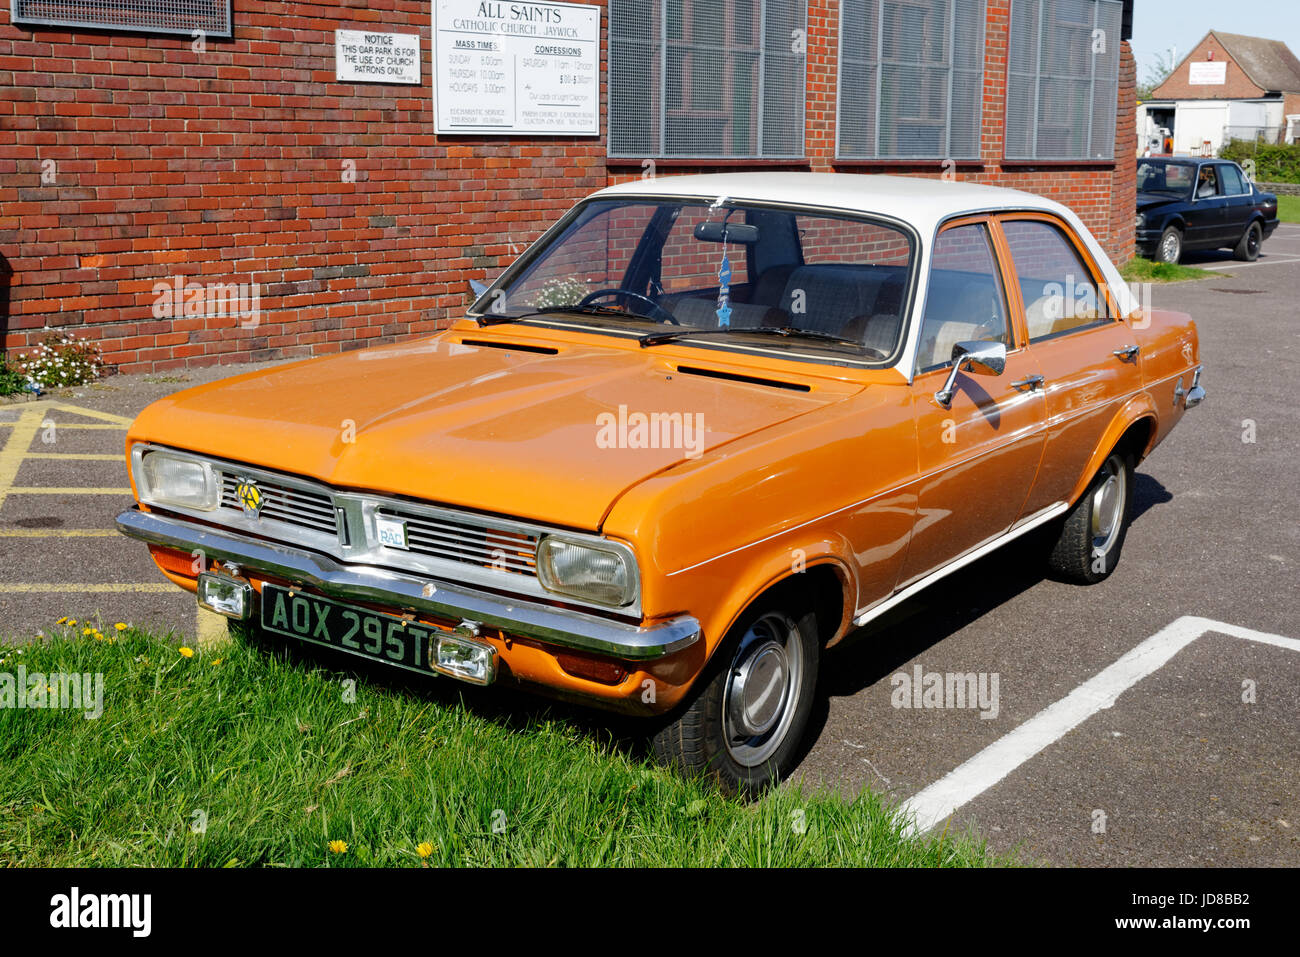 A Vauxhall Viva classic car in a car park - Stock Image